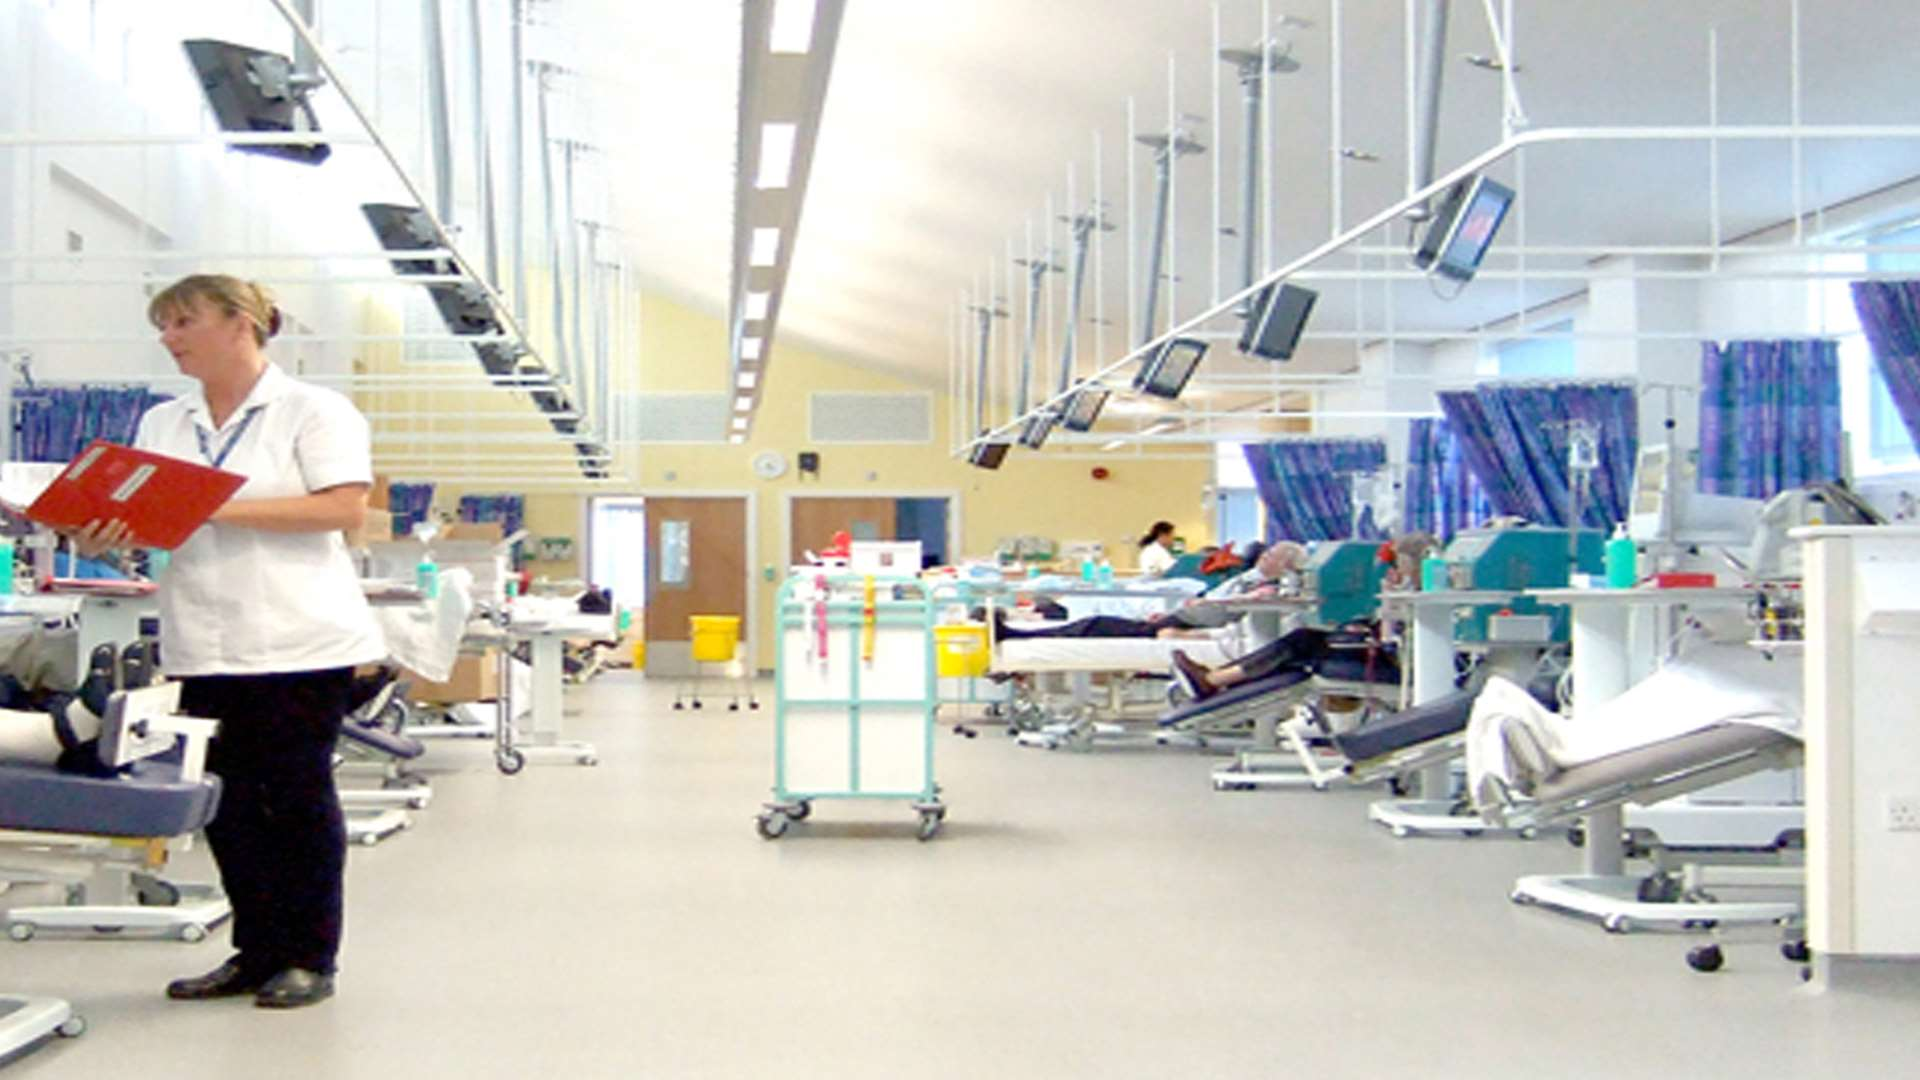 A dialysis unit. Stock image